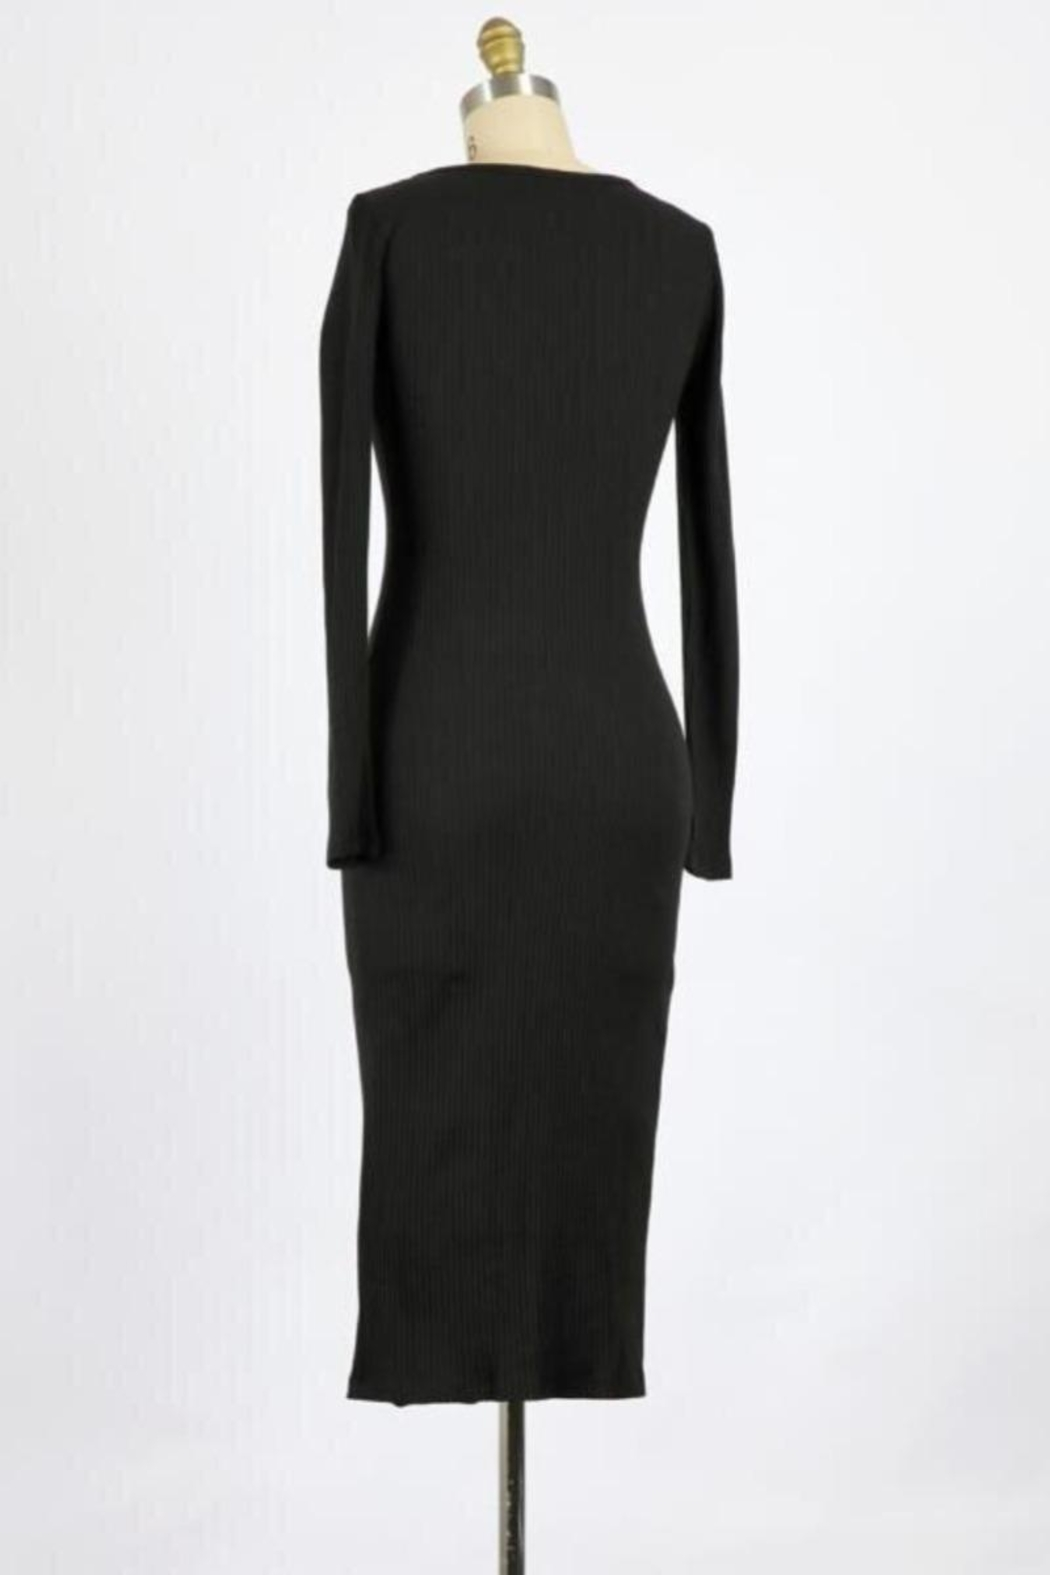 Final Touch Lana Long Sleeve Body Front Dress In Black - Front Full Image